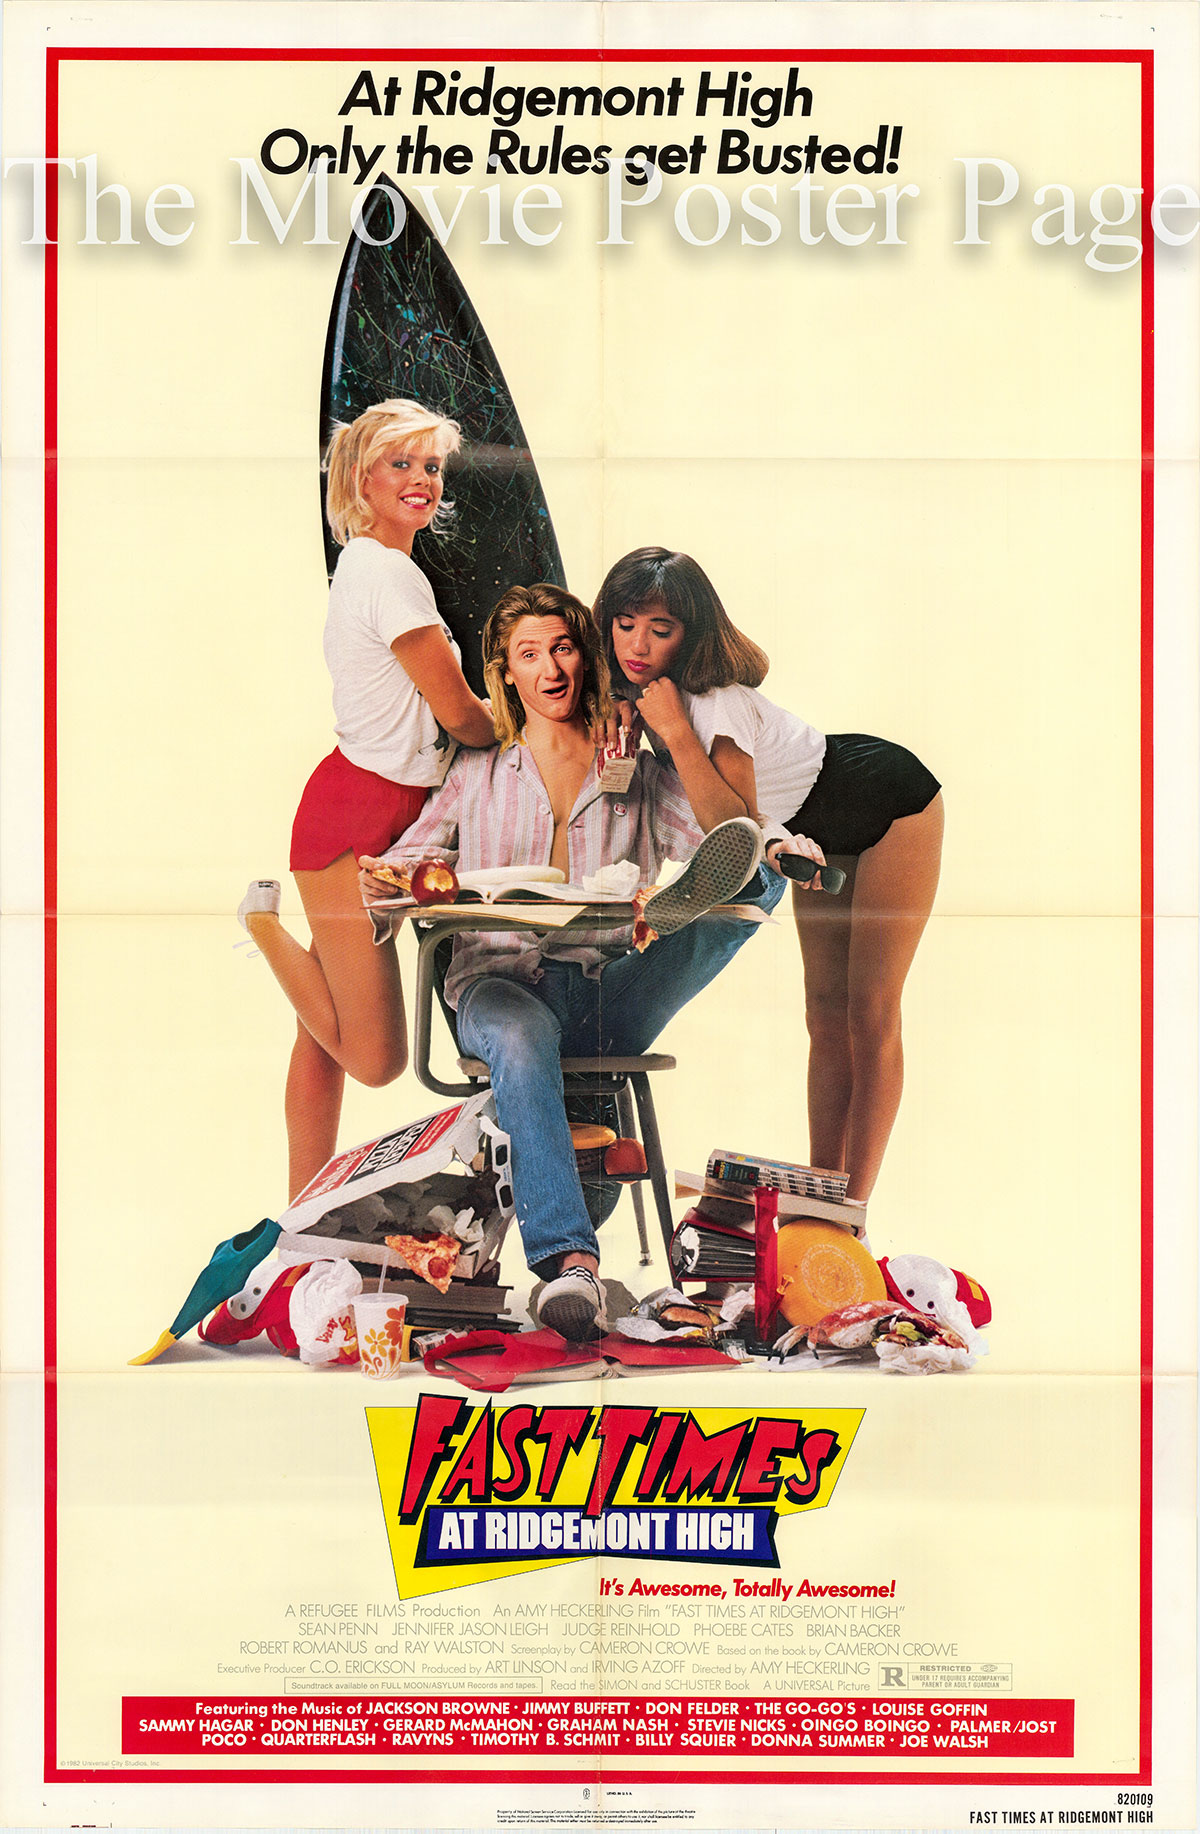 Pictured is a US one-sheet poster for the 1982 Amy Heckerling film Fast Times at Ridgemont High starring Sean Penn as Jeff Spicoli.